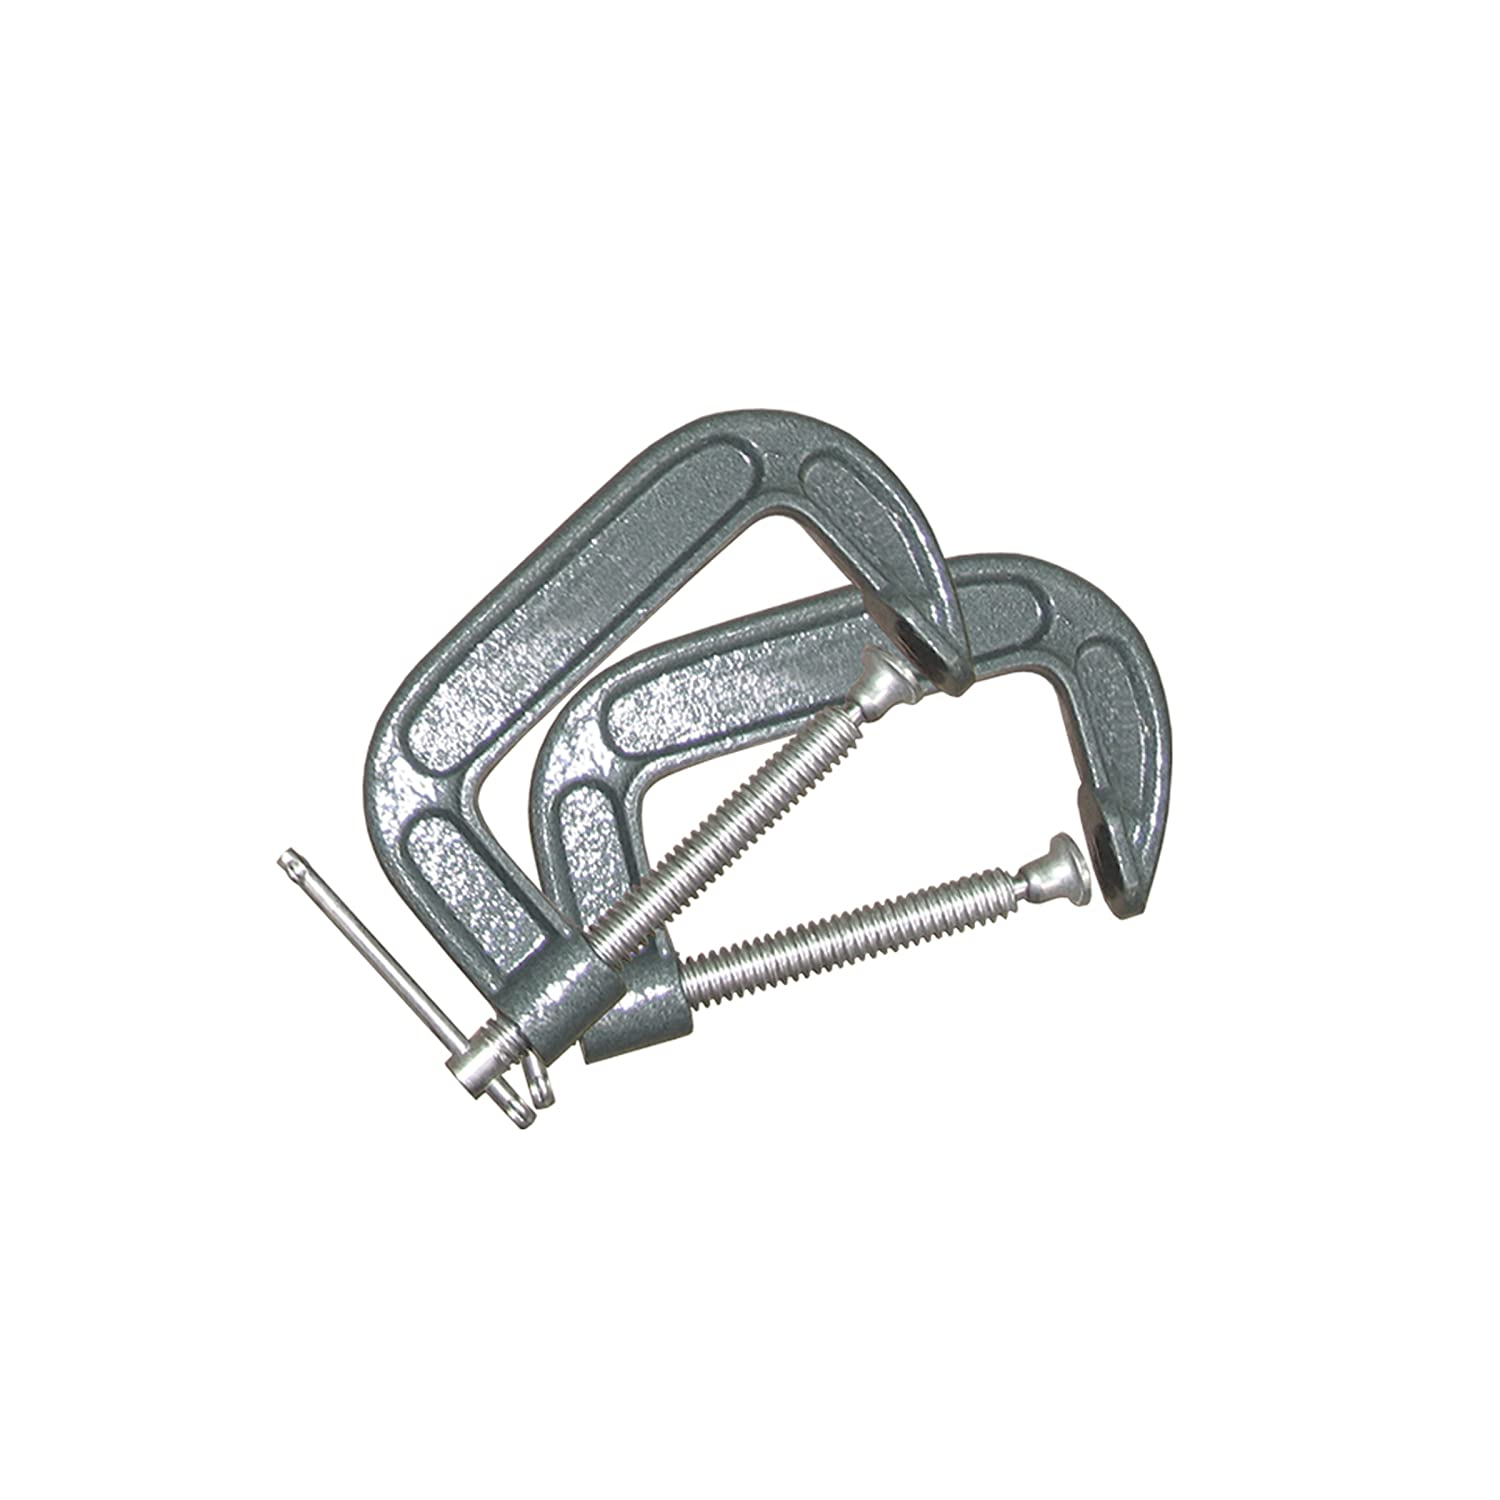 05-0301 Fits Weston Apple /& Fruit Crusher 05-0201 Weston Apple and Fruit Hopper Accessory for Fruit and Wine Press